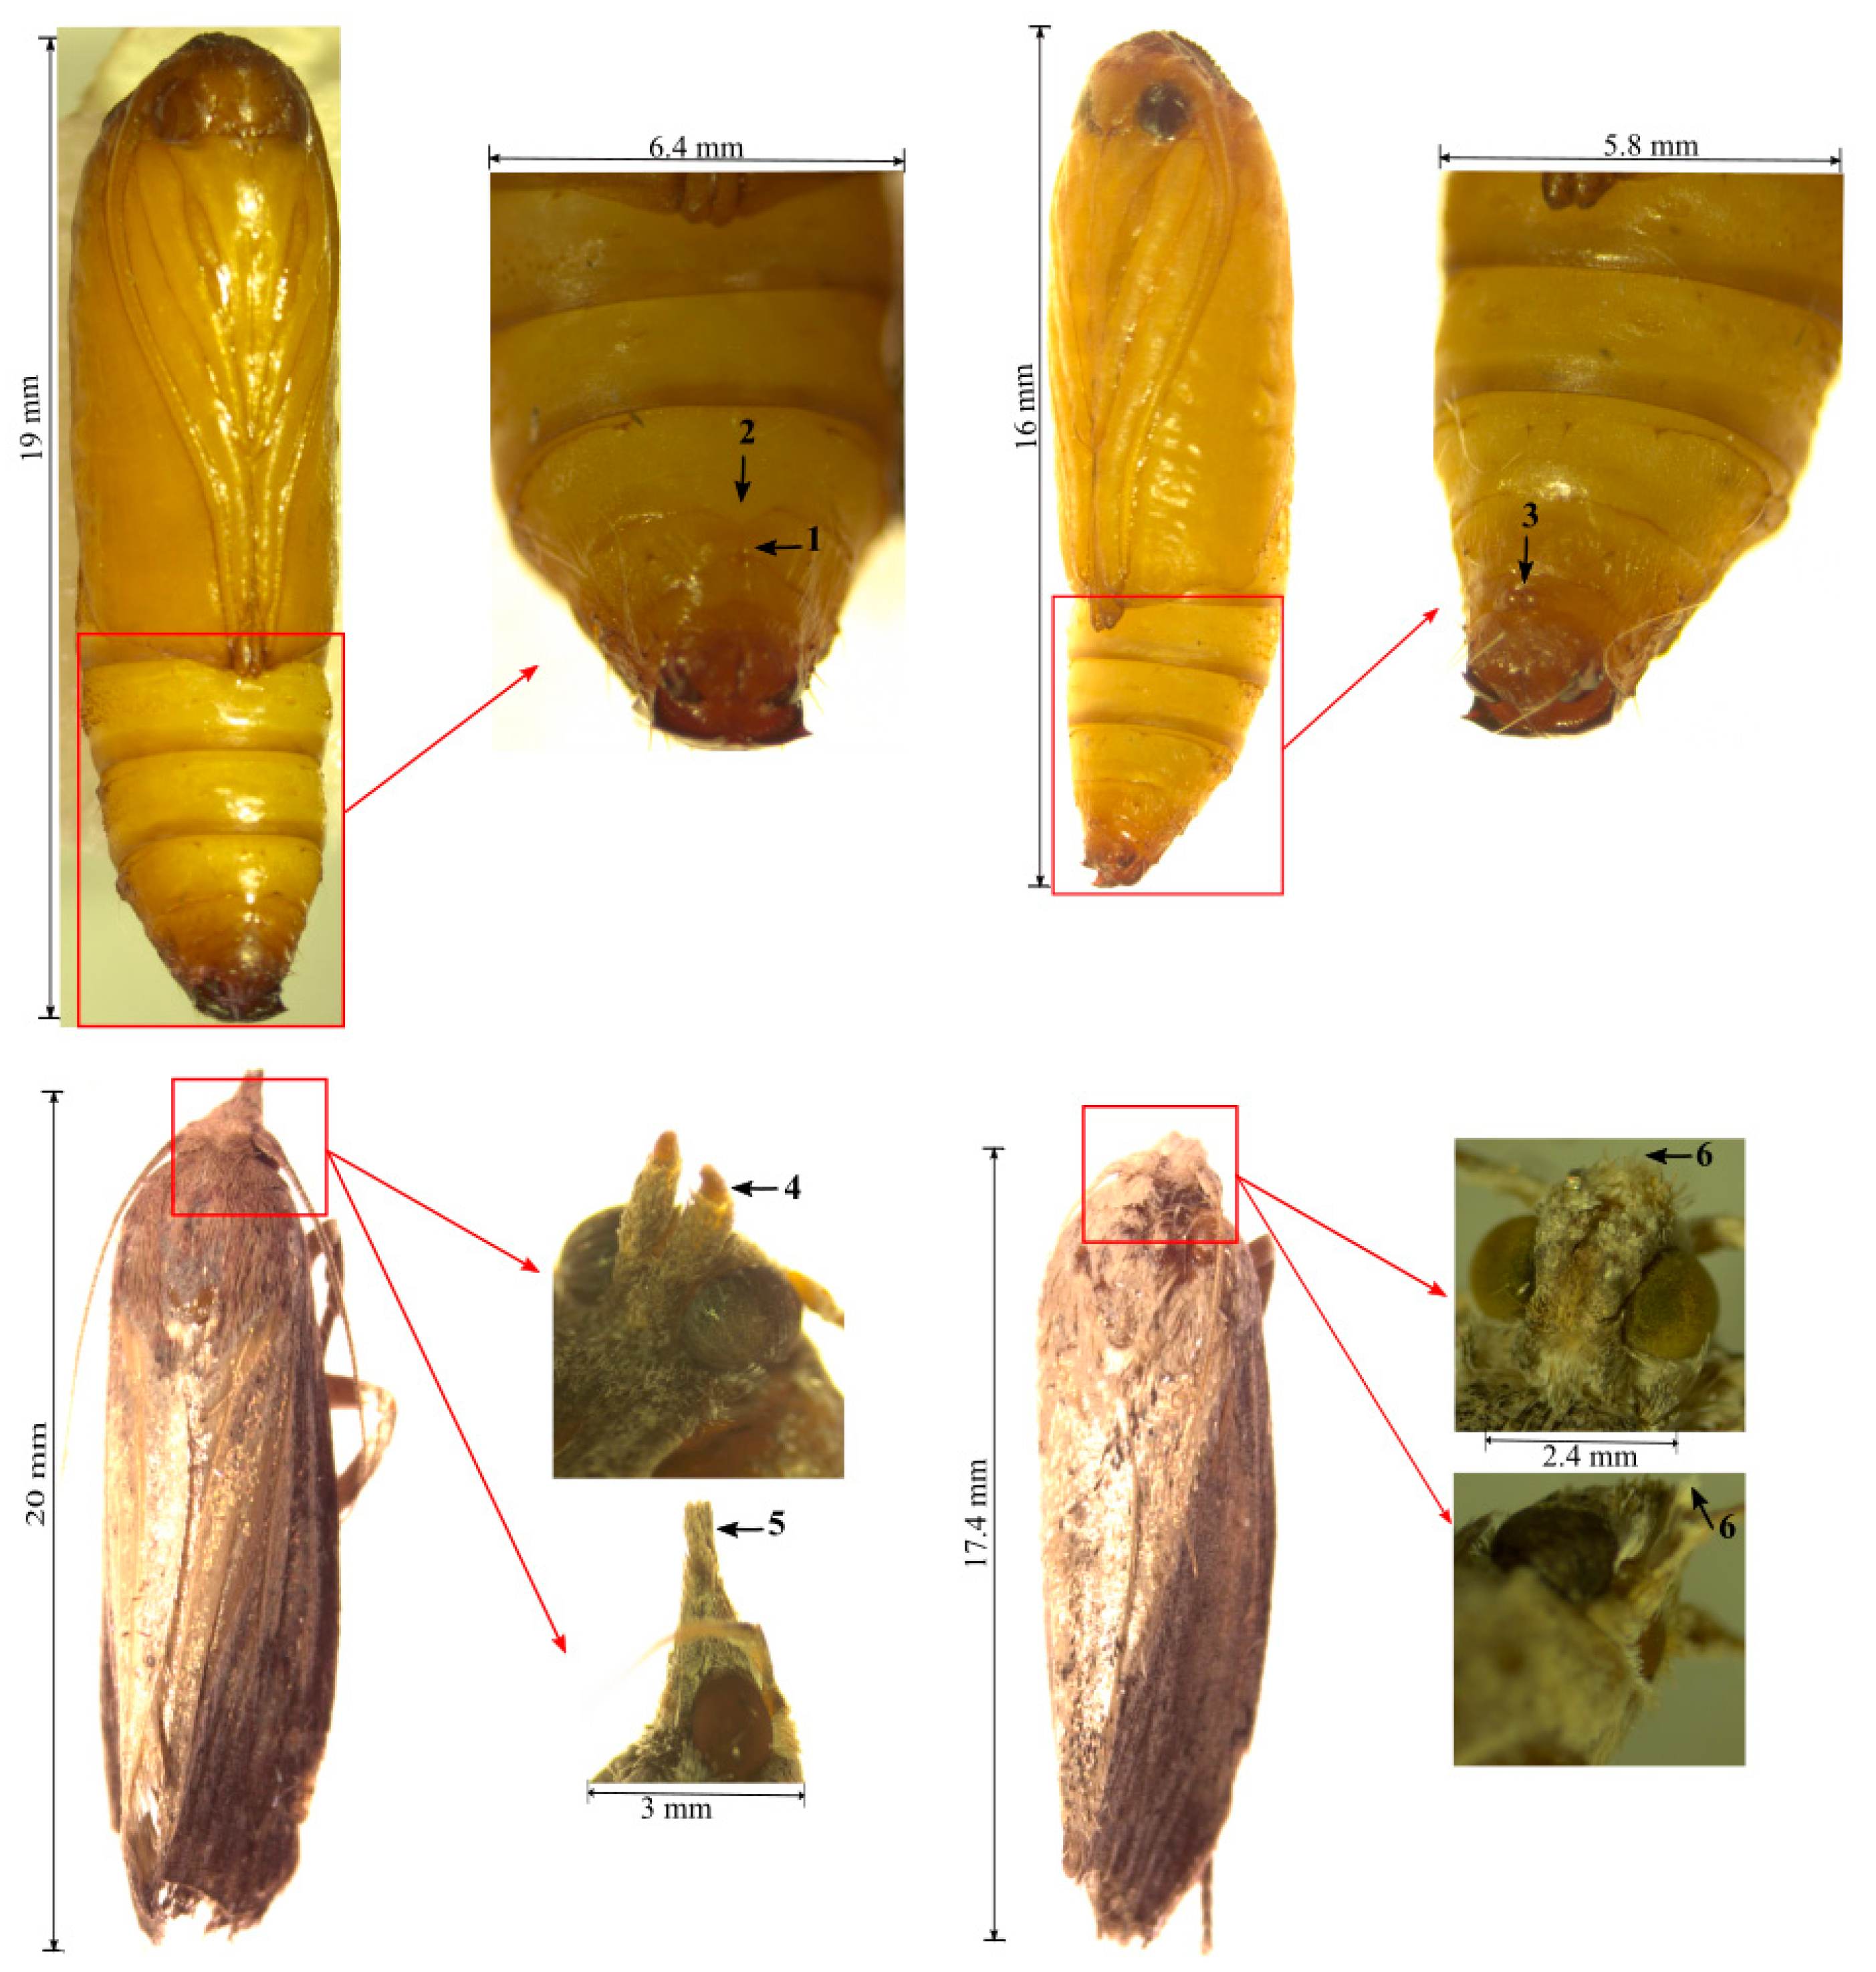 Insects Free Full Text The Biology And Control Of The Greater Wax Moth Galleria Mellonella